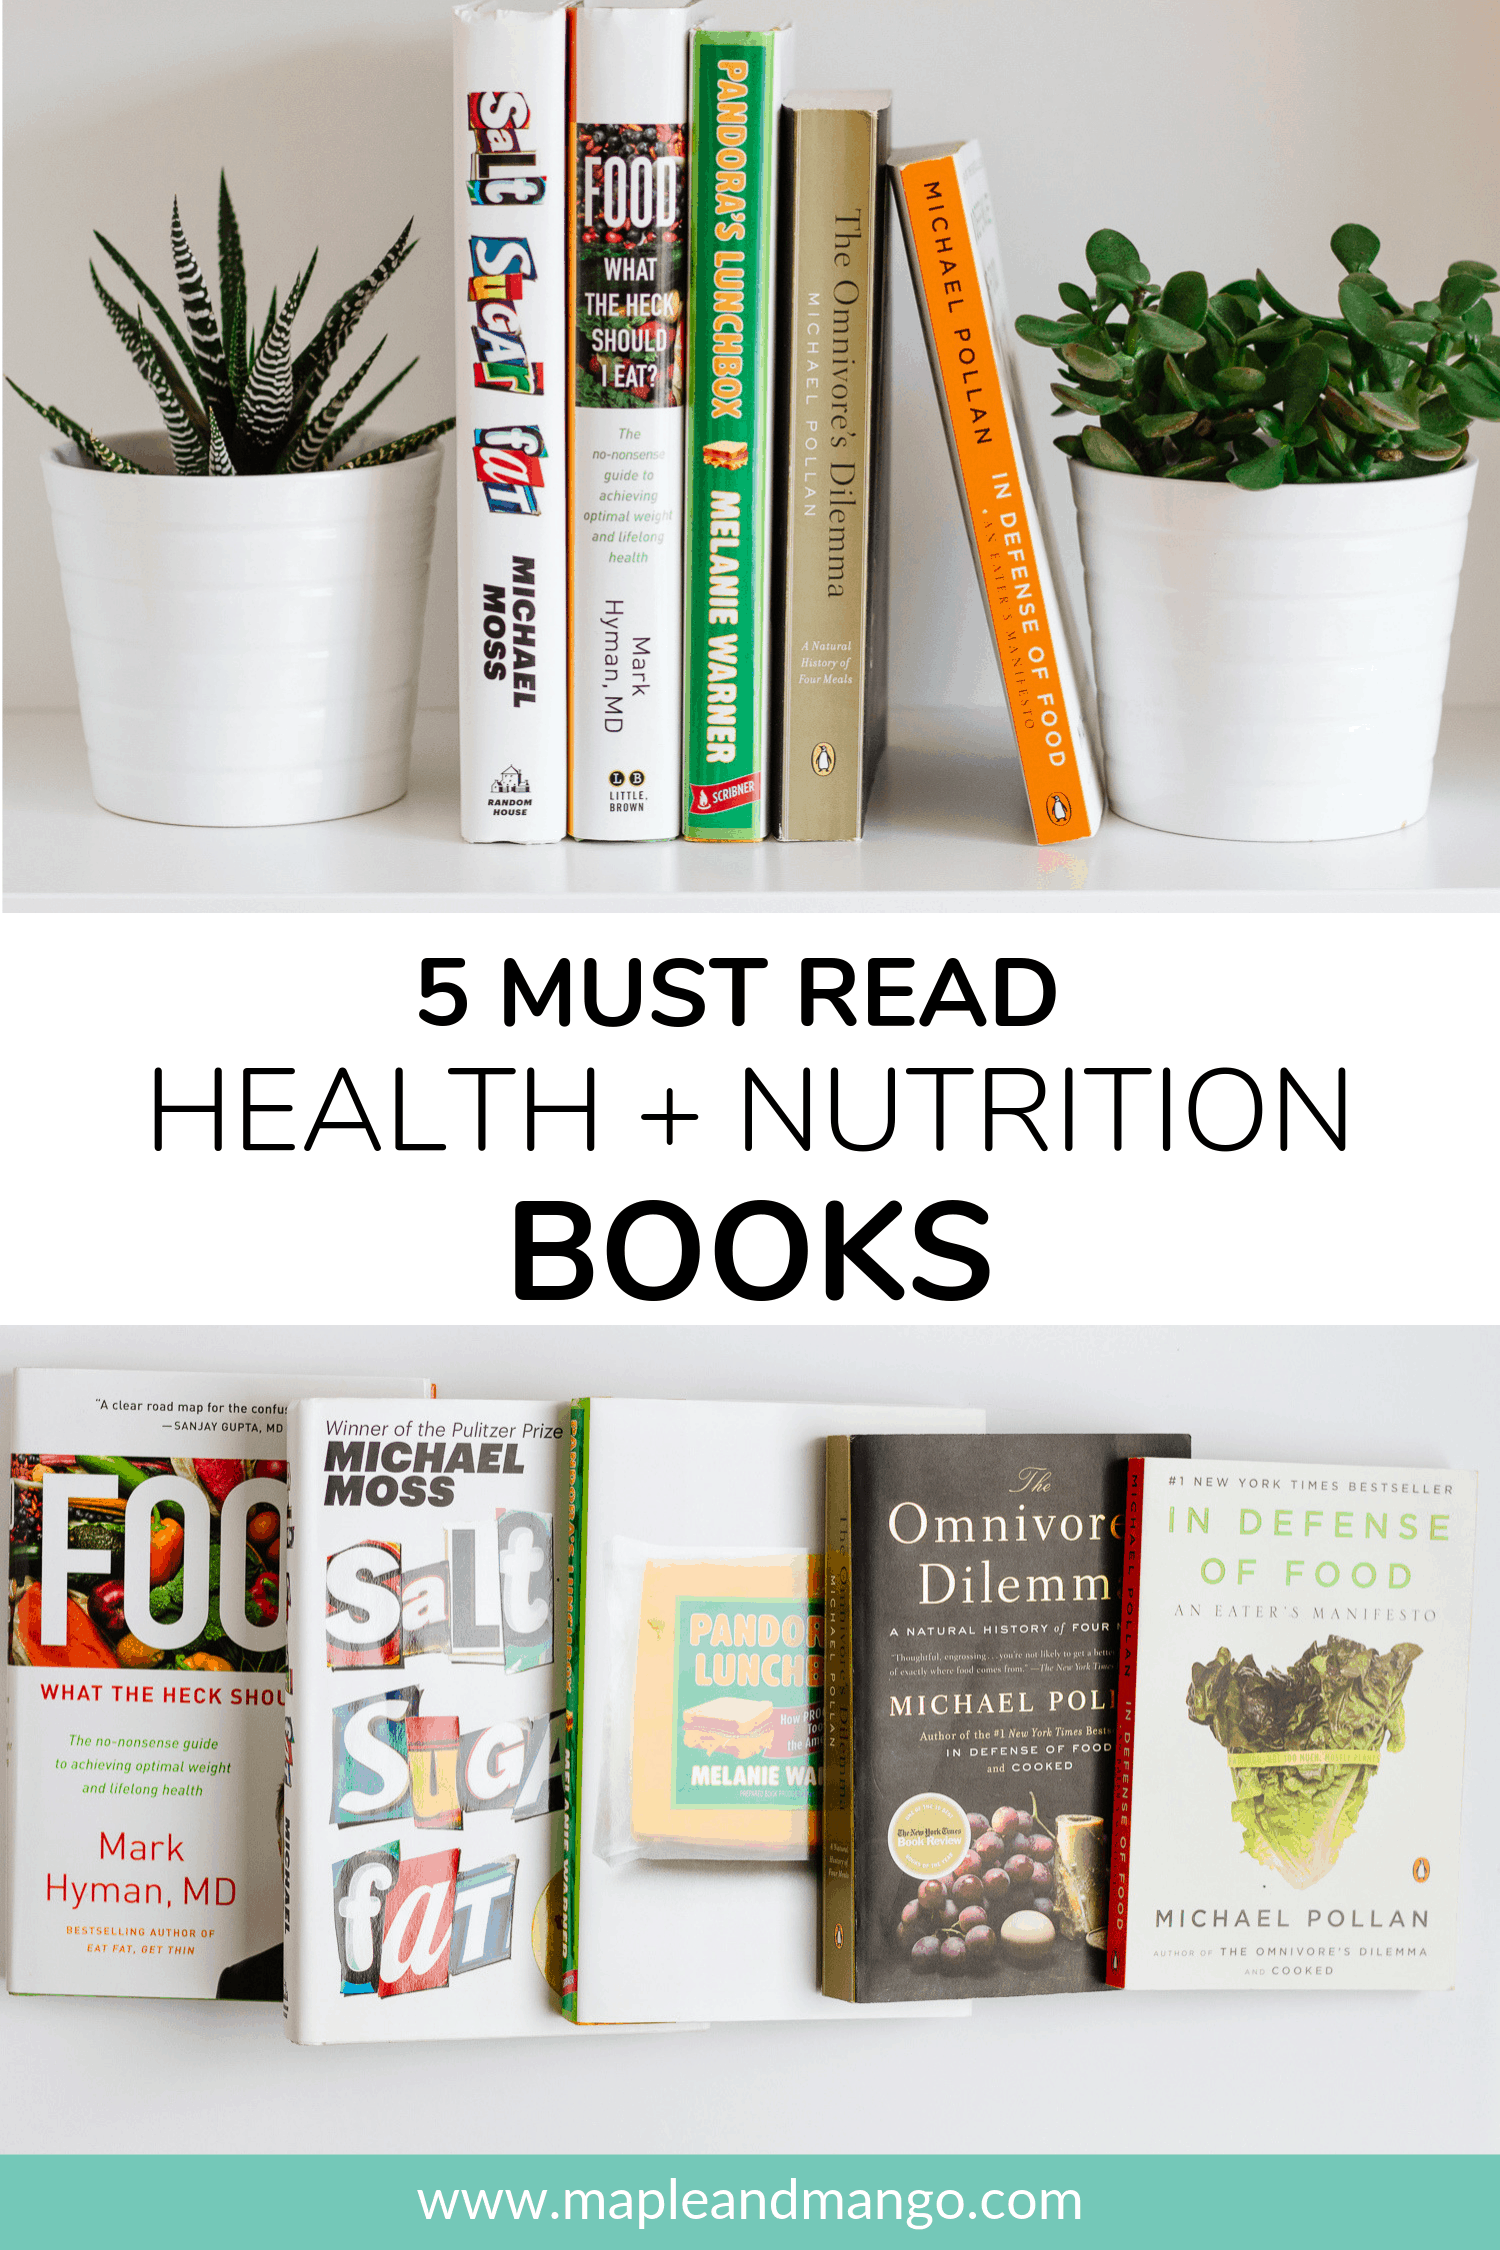 Pinterest image for 5 Must Read Health + Nutrition Books